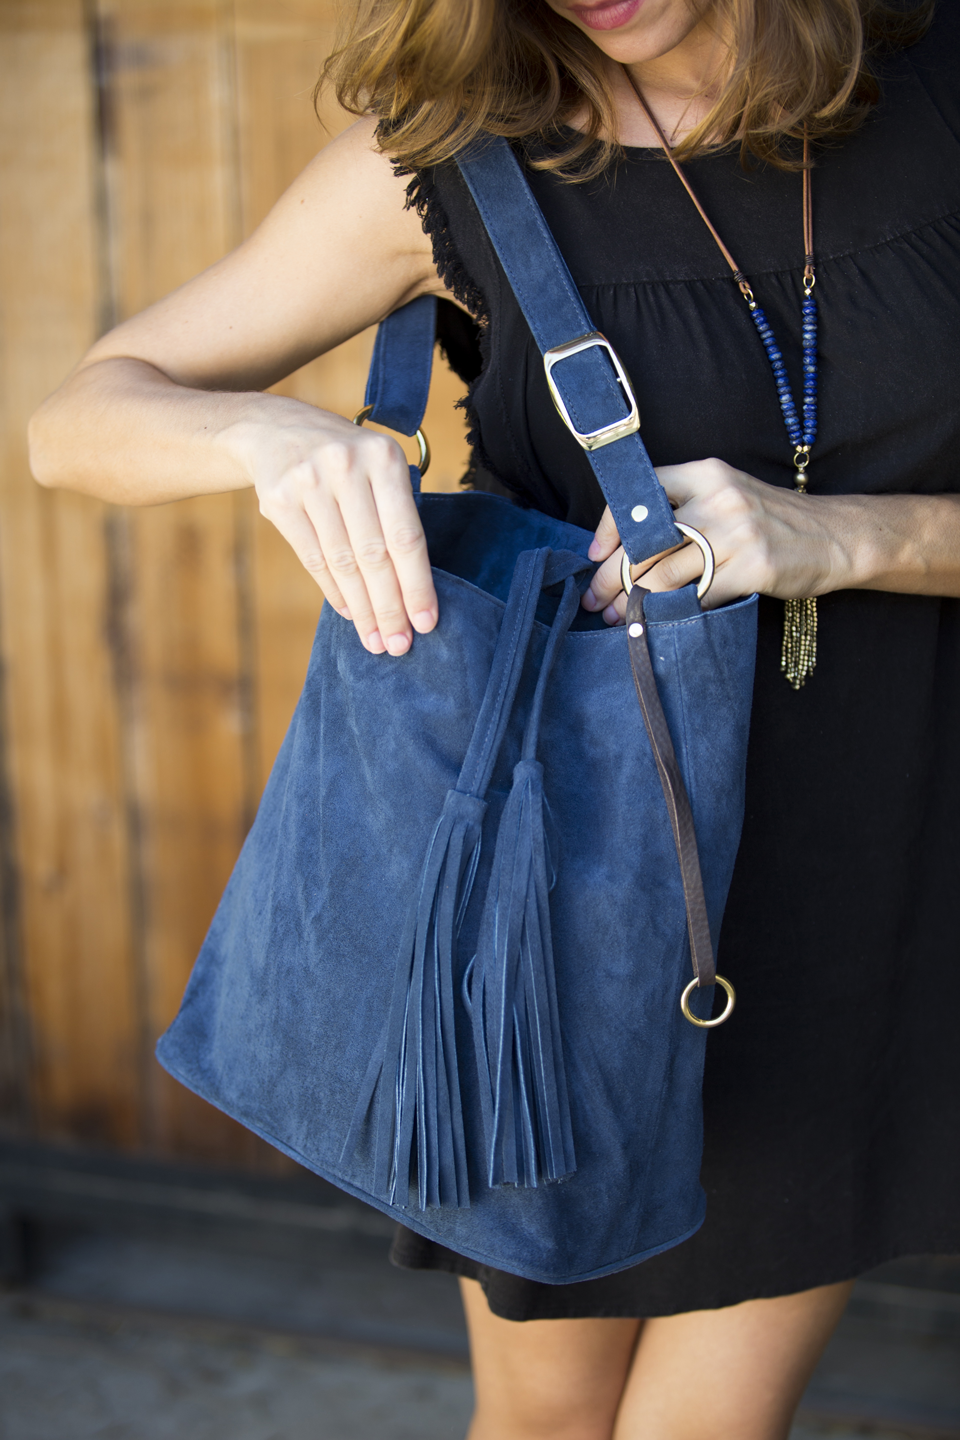 Shop the Look   INA SUEDE HANDBAG   THE TASSEL NECKLACE